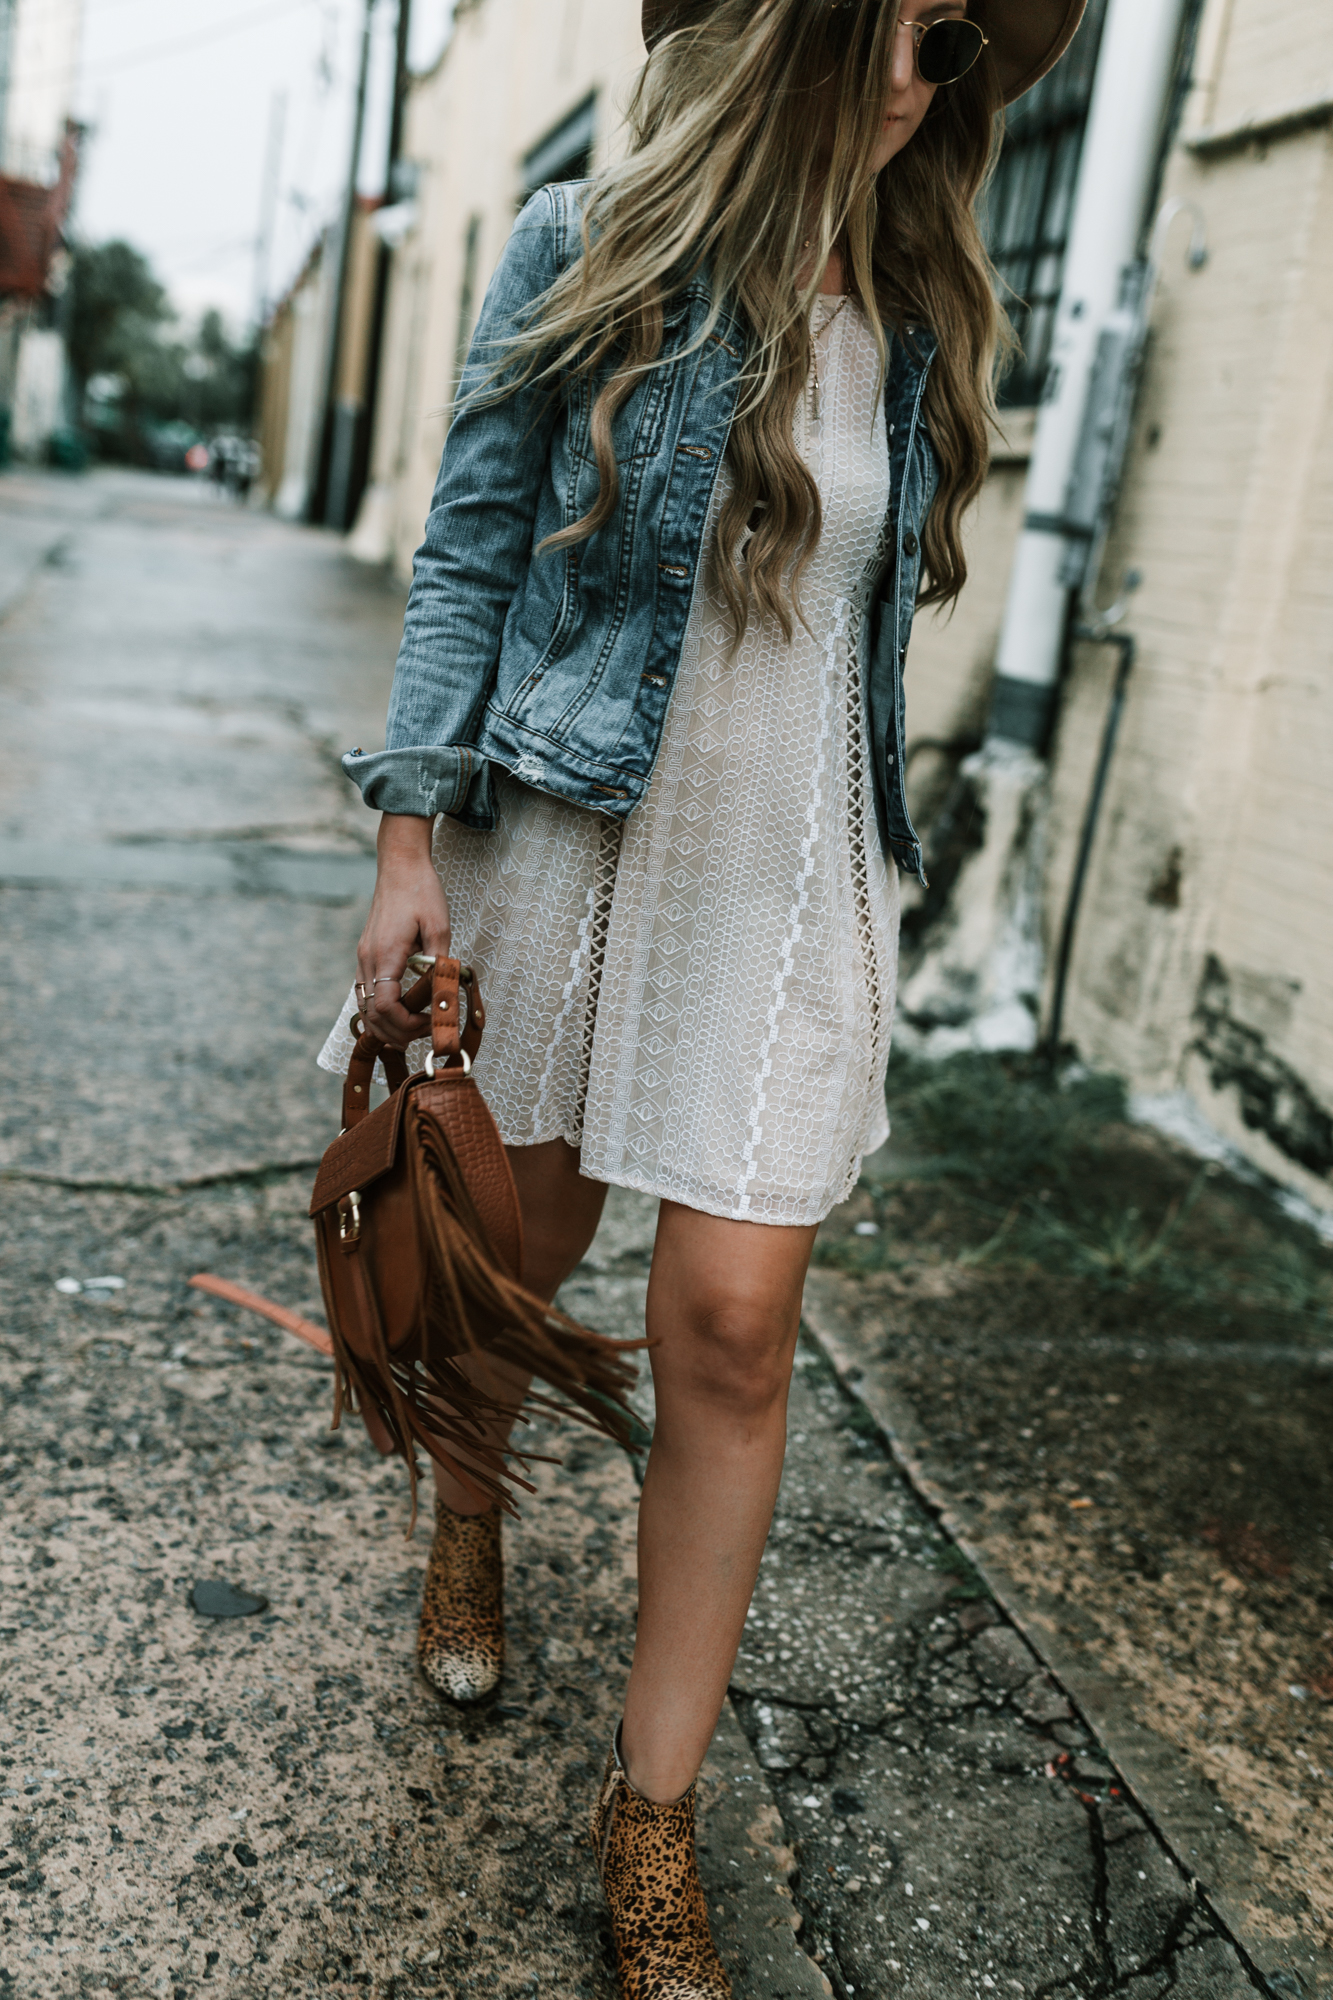 Cute Fall Transition Outfit Upbeat Soles Orlando